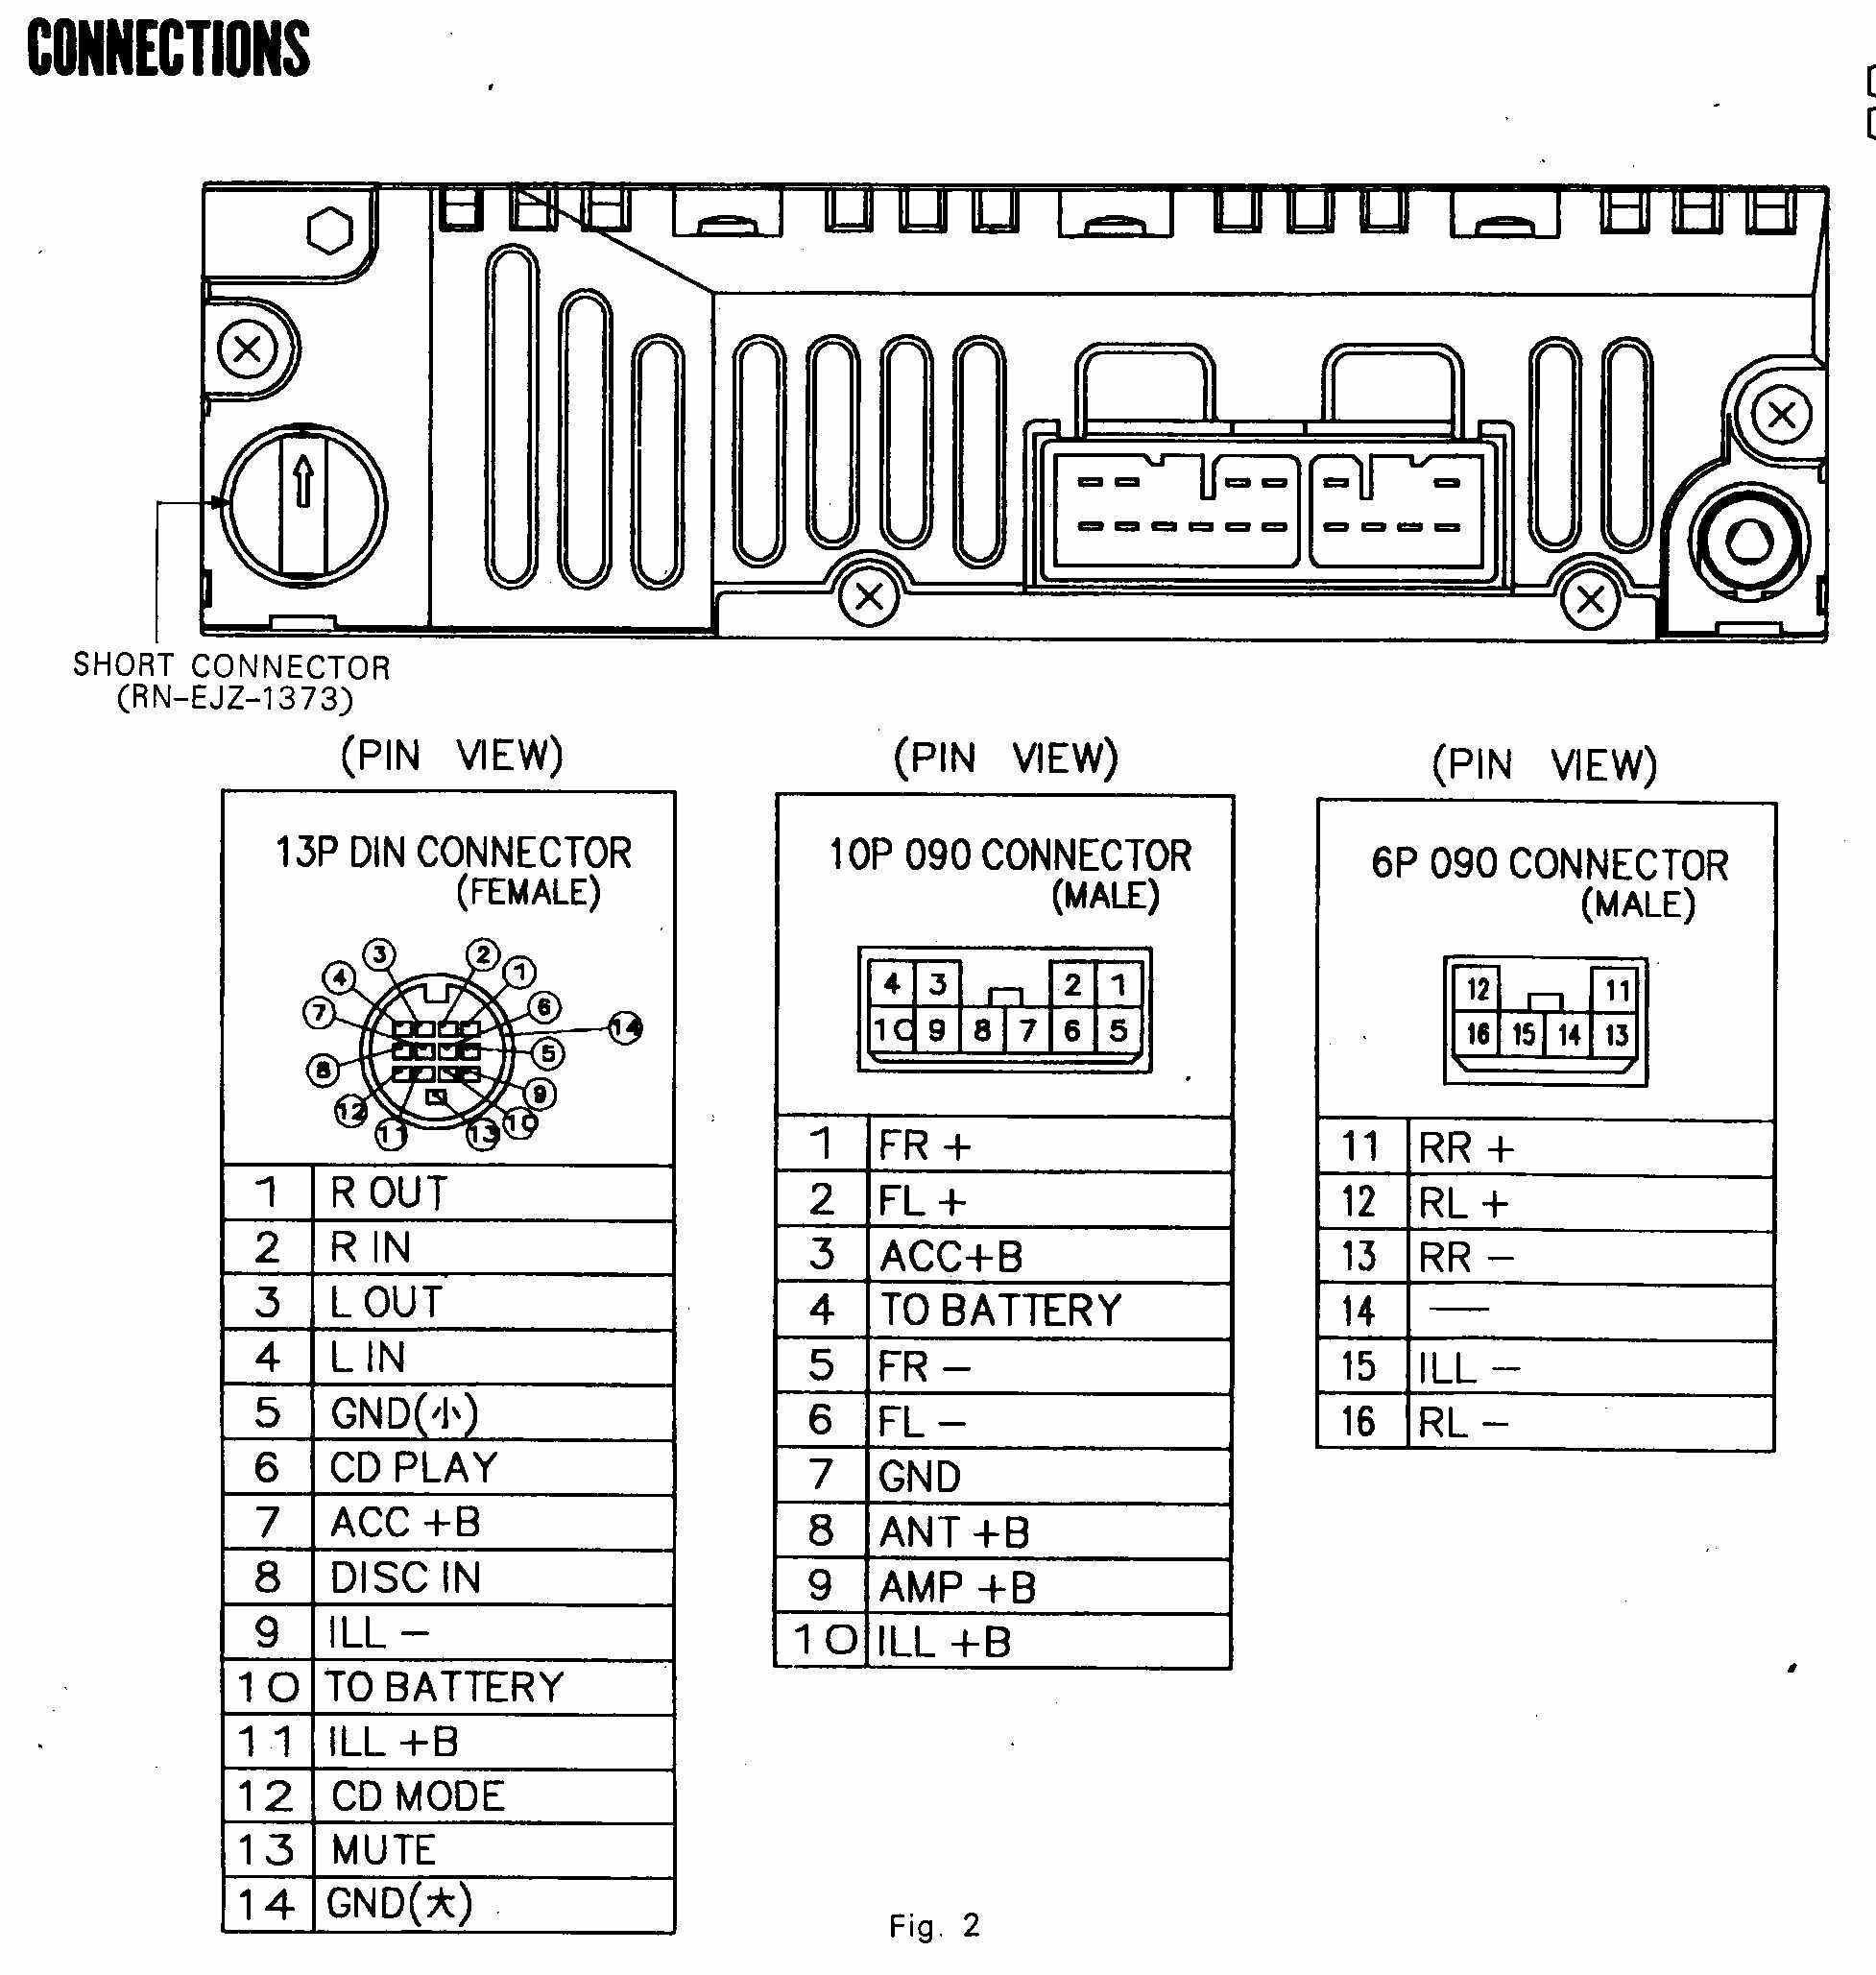 [SCHEMATICS_4NL]  156 1984 Bmw 318i Radio Wiring Diagram | Wiring Library | 1984 Bmw 318i Radio Wiring Diagram |  | Wiring Library